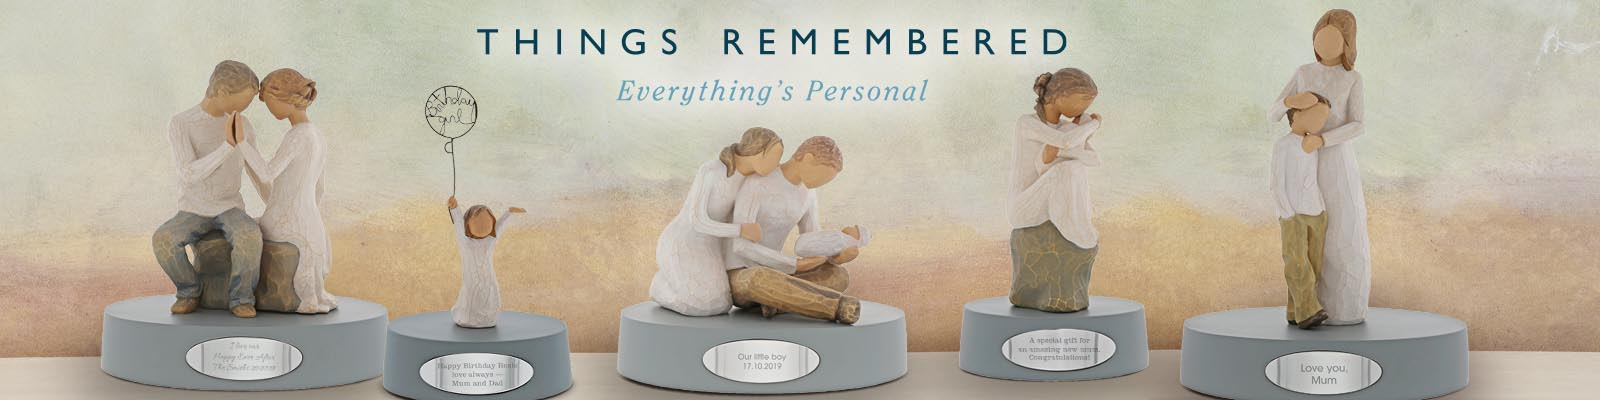 Things Remembered header banner